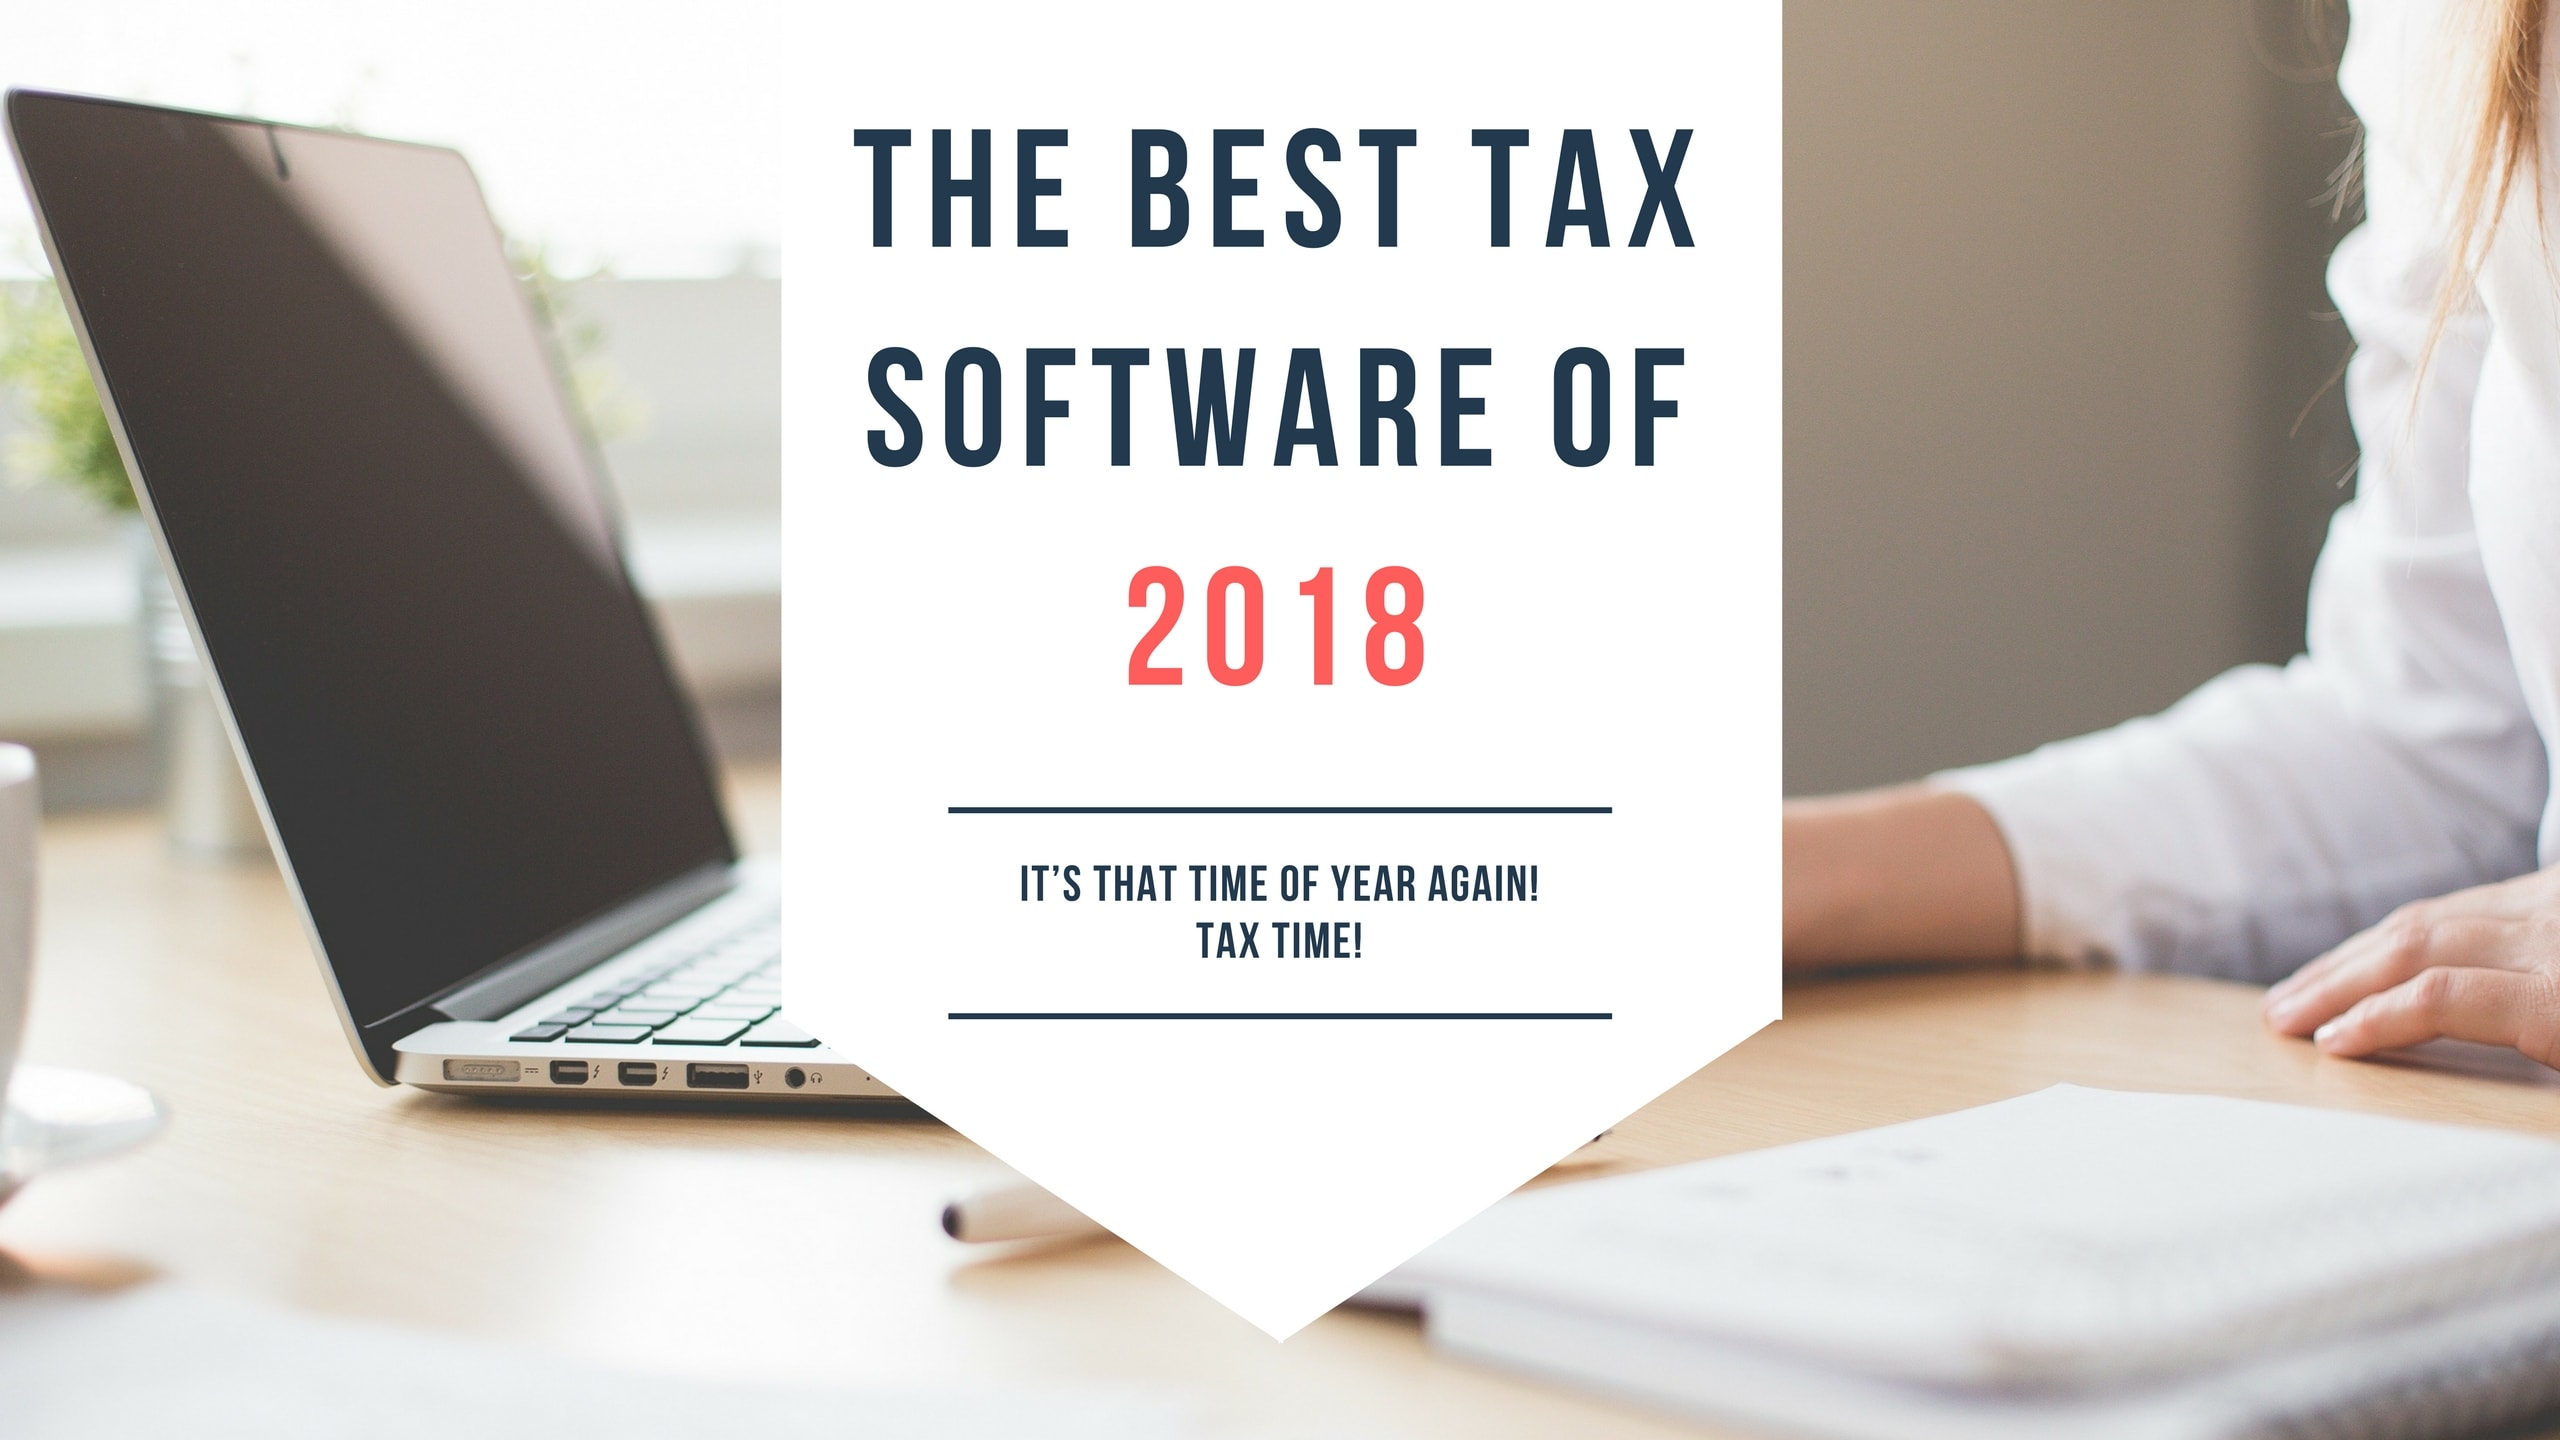 THE BEST TAX SOFTWARE OF 2018!